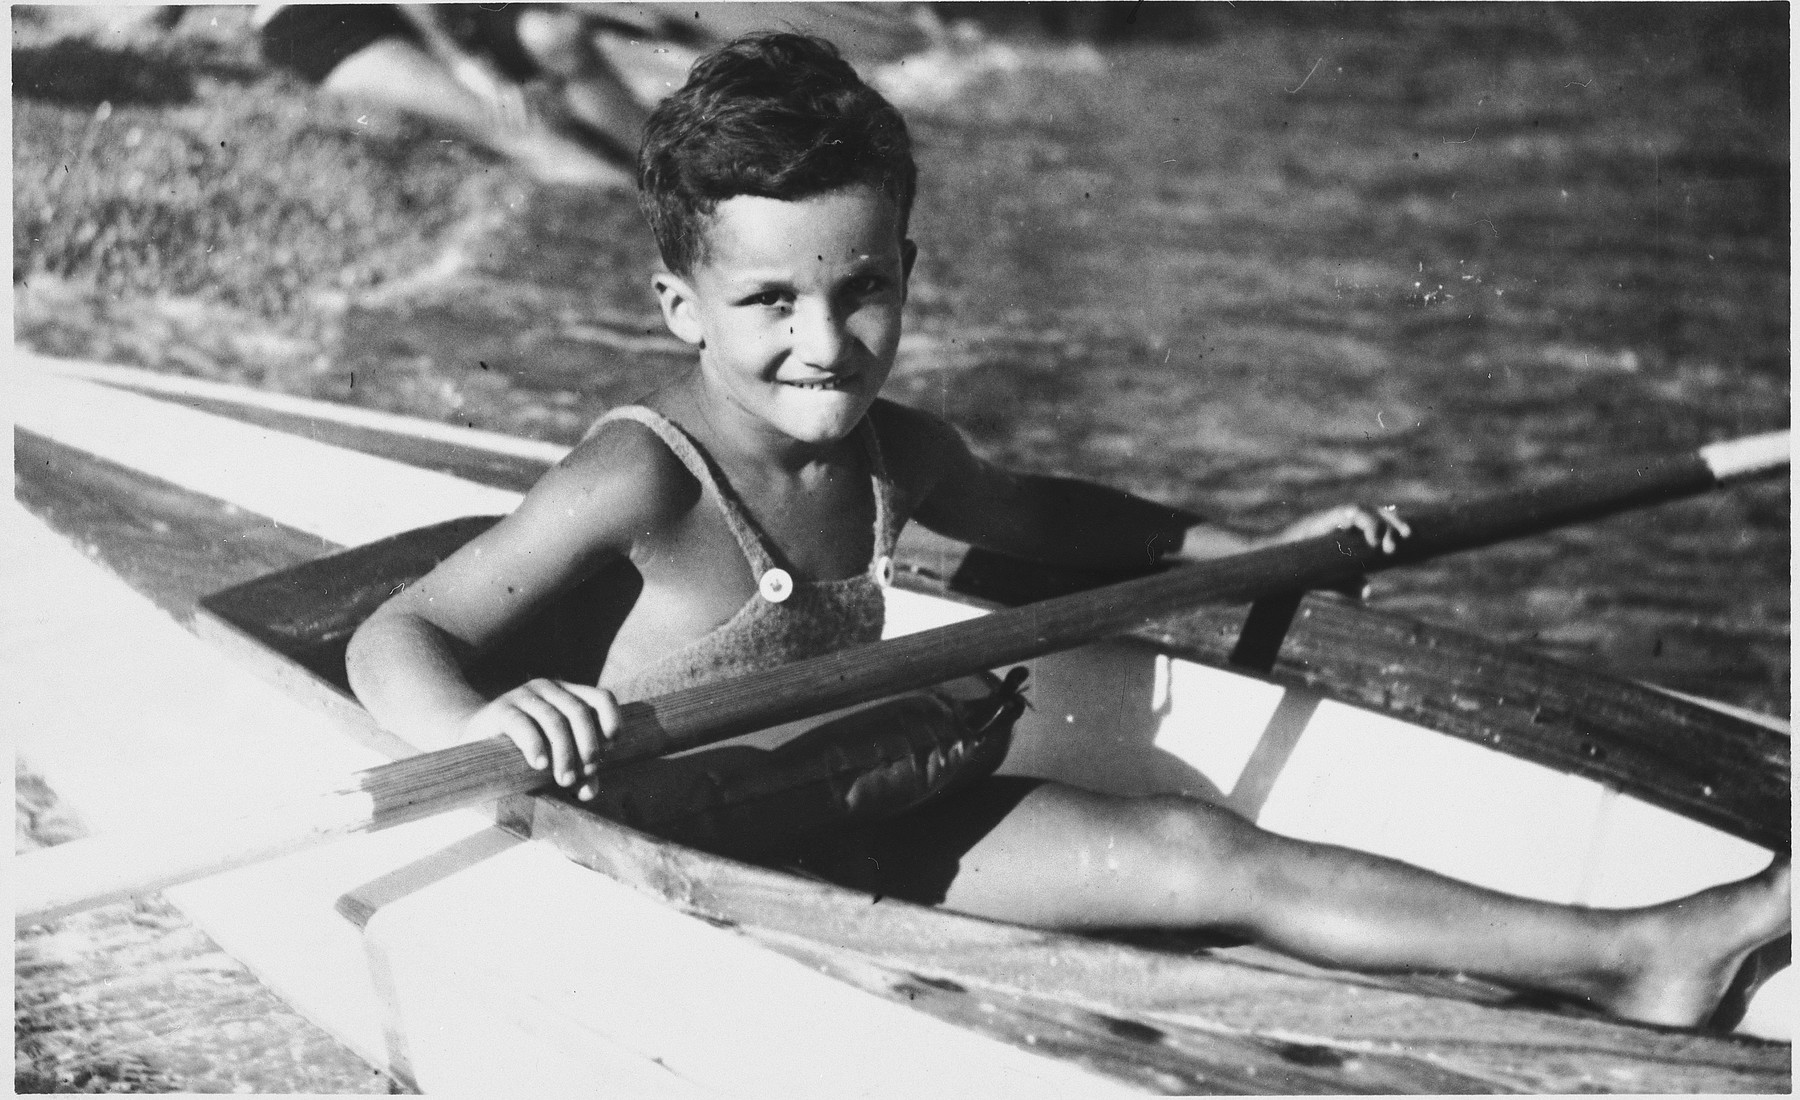 Portrait of a young Jewish boy in a kayak in Dubrovnik, Croatia.